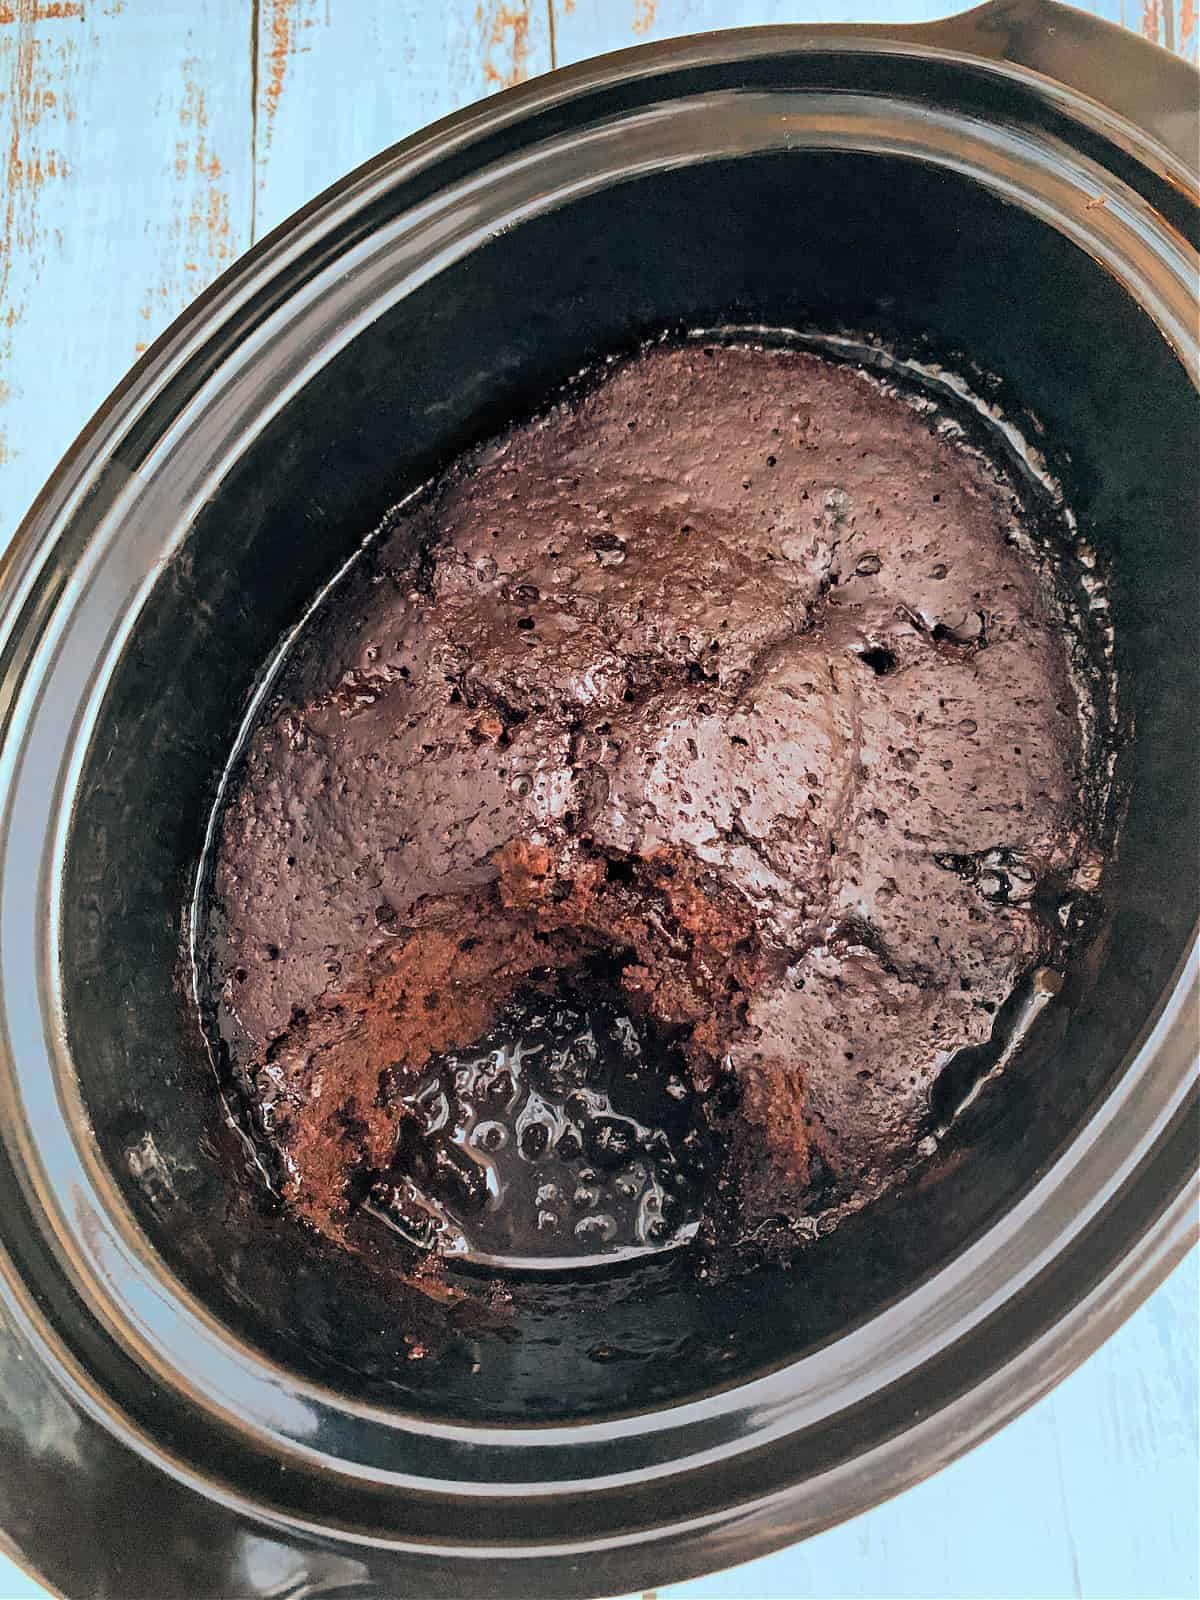 Chocolate sponge pudding with chocolate sauce in slow cooker pot, one portion removed to show the sauce.